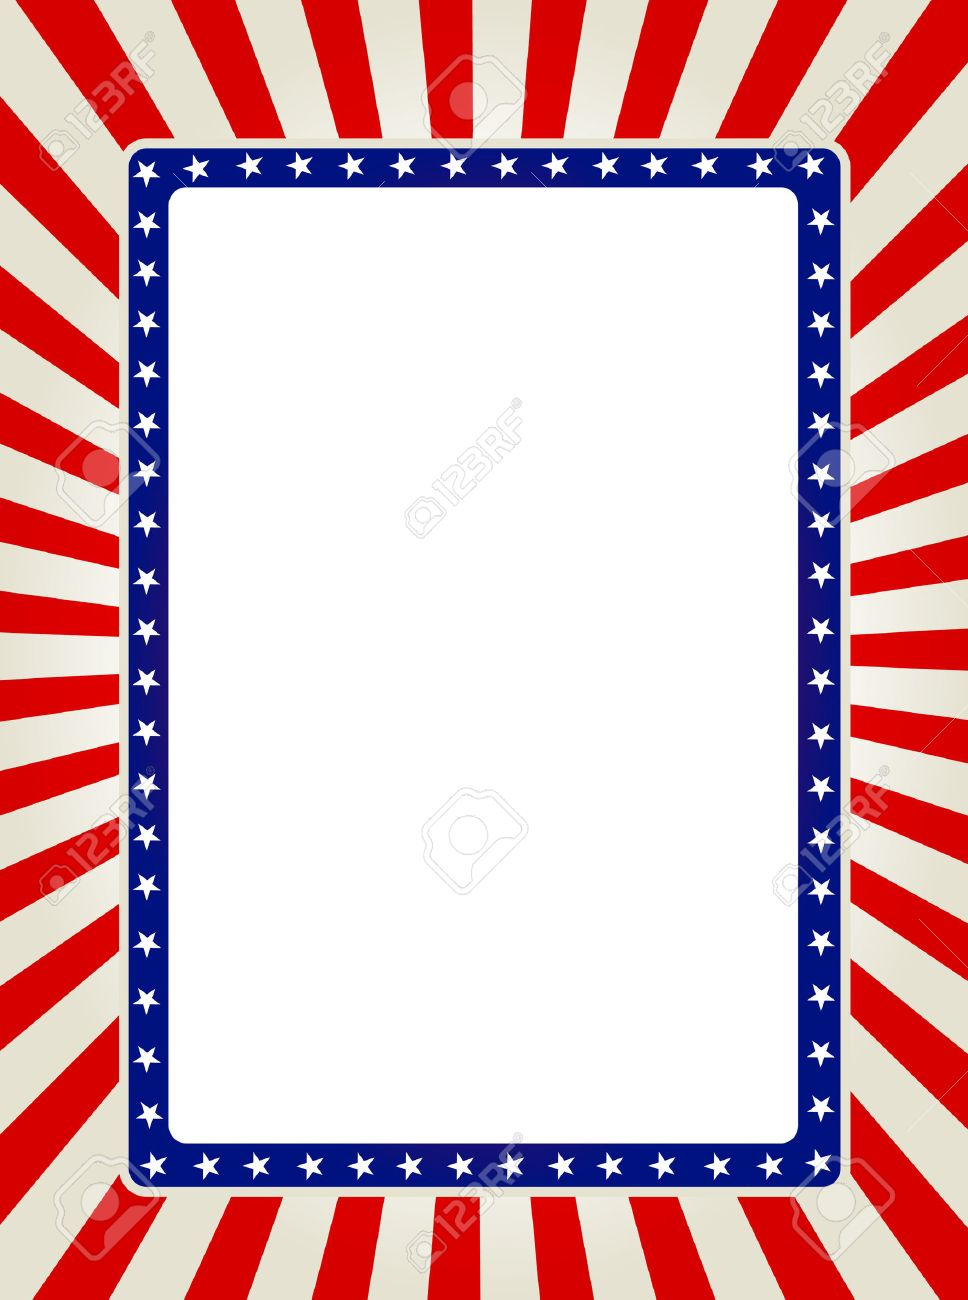 Blue And Red Patriotic Stars And Stripes Page Border / Frame ...